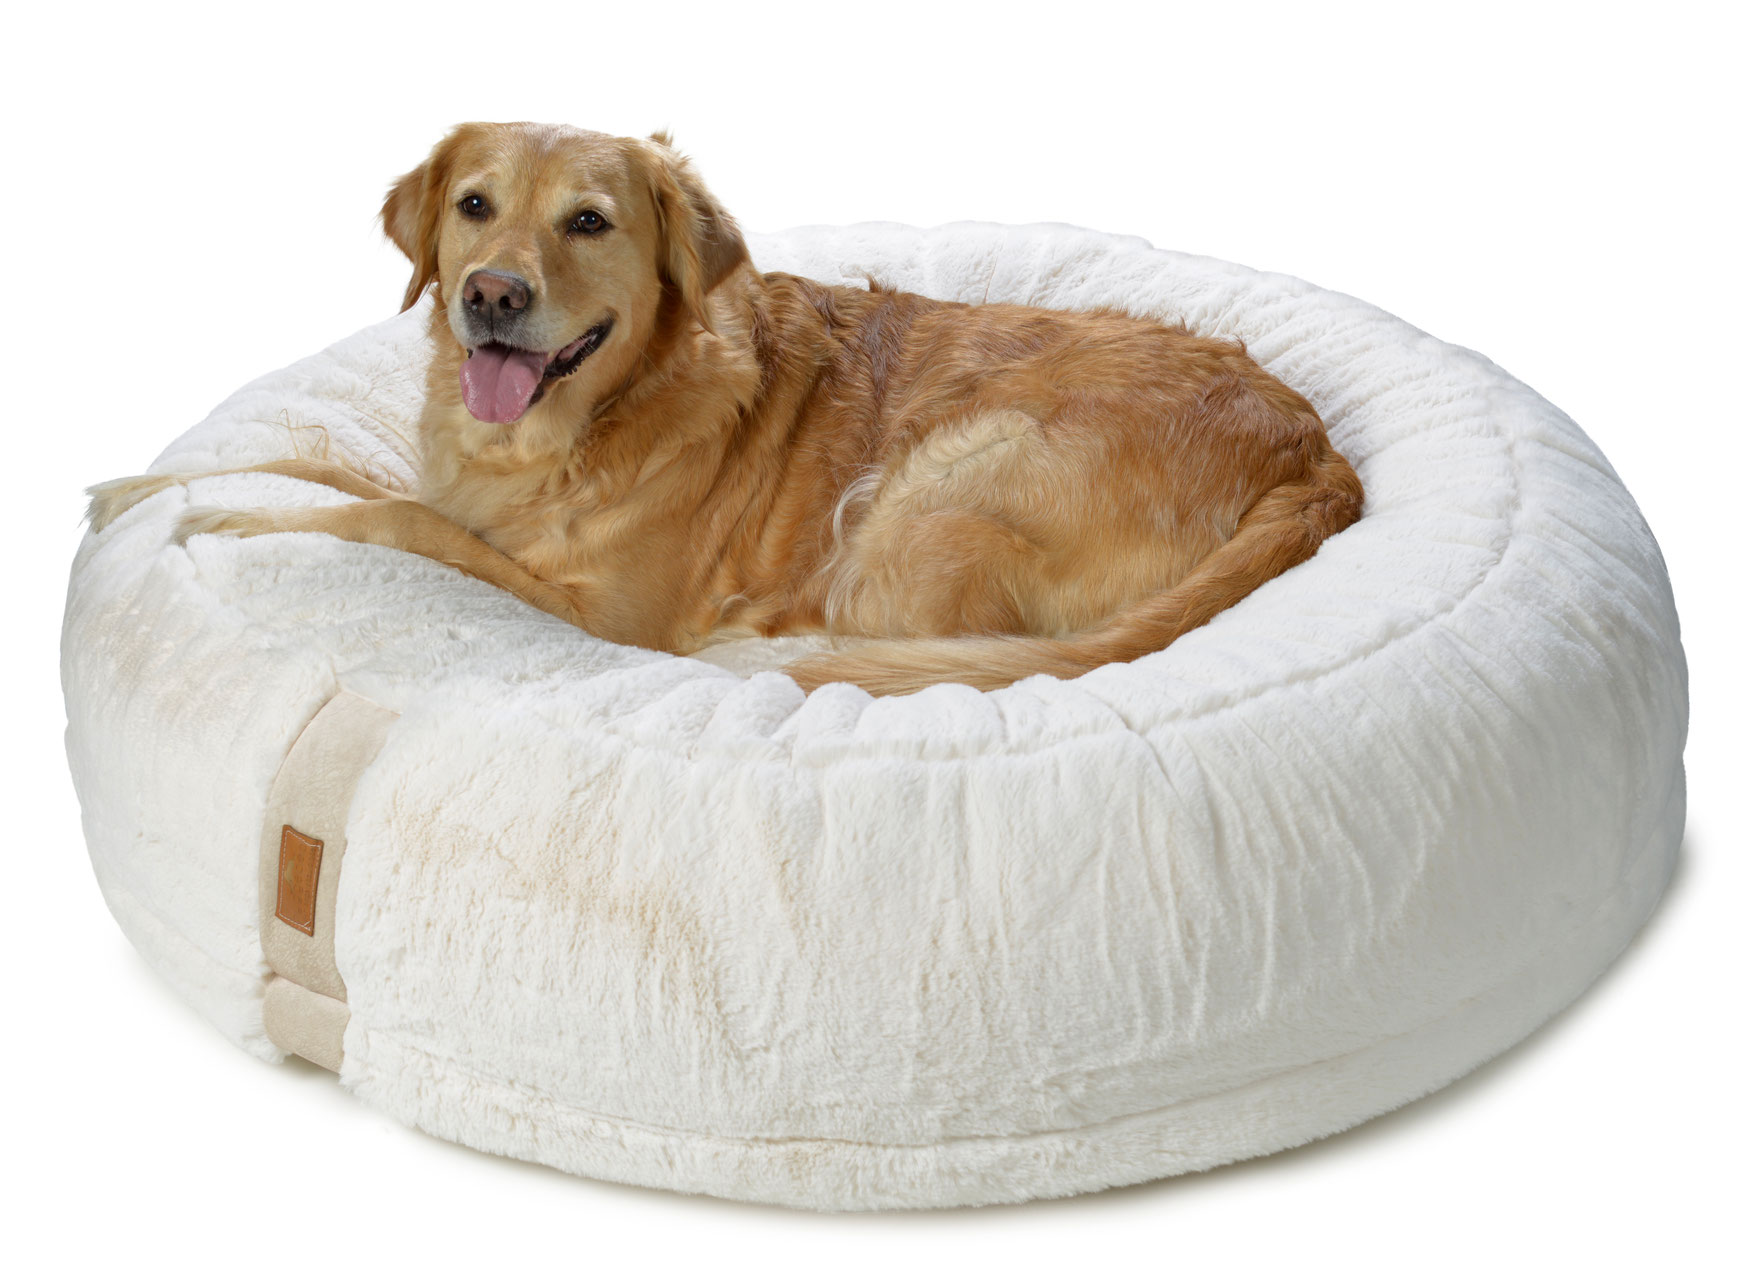 Full Size of Hundebett Flocke 125 Cm Orthopdisches Hyggebed Xxl Regal Tiefe 30 50 Breit Bett 120 20 Tief 60 80 Hoch 40 Sofa Sitzhöhe 55 Liegehöhe 25 Wohnzimmer Hundebett Flocke 125 Cm